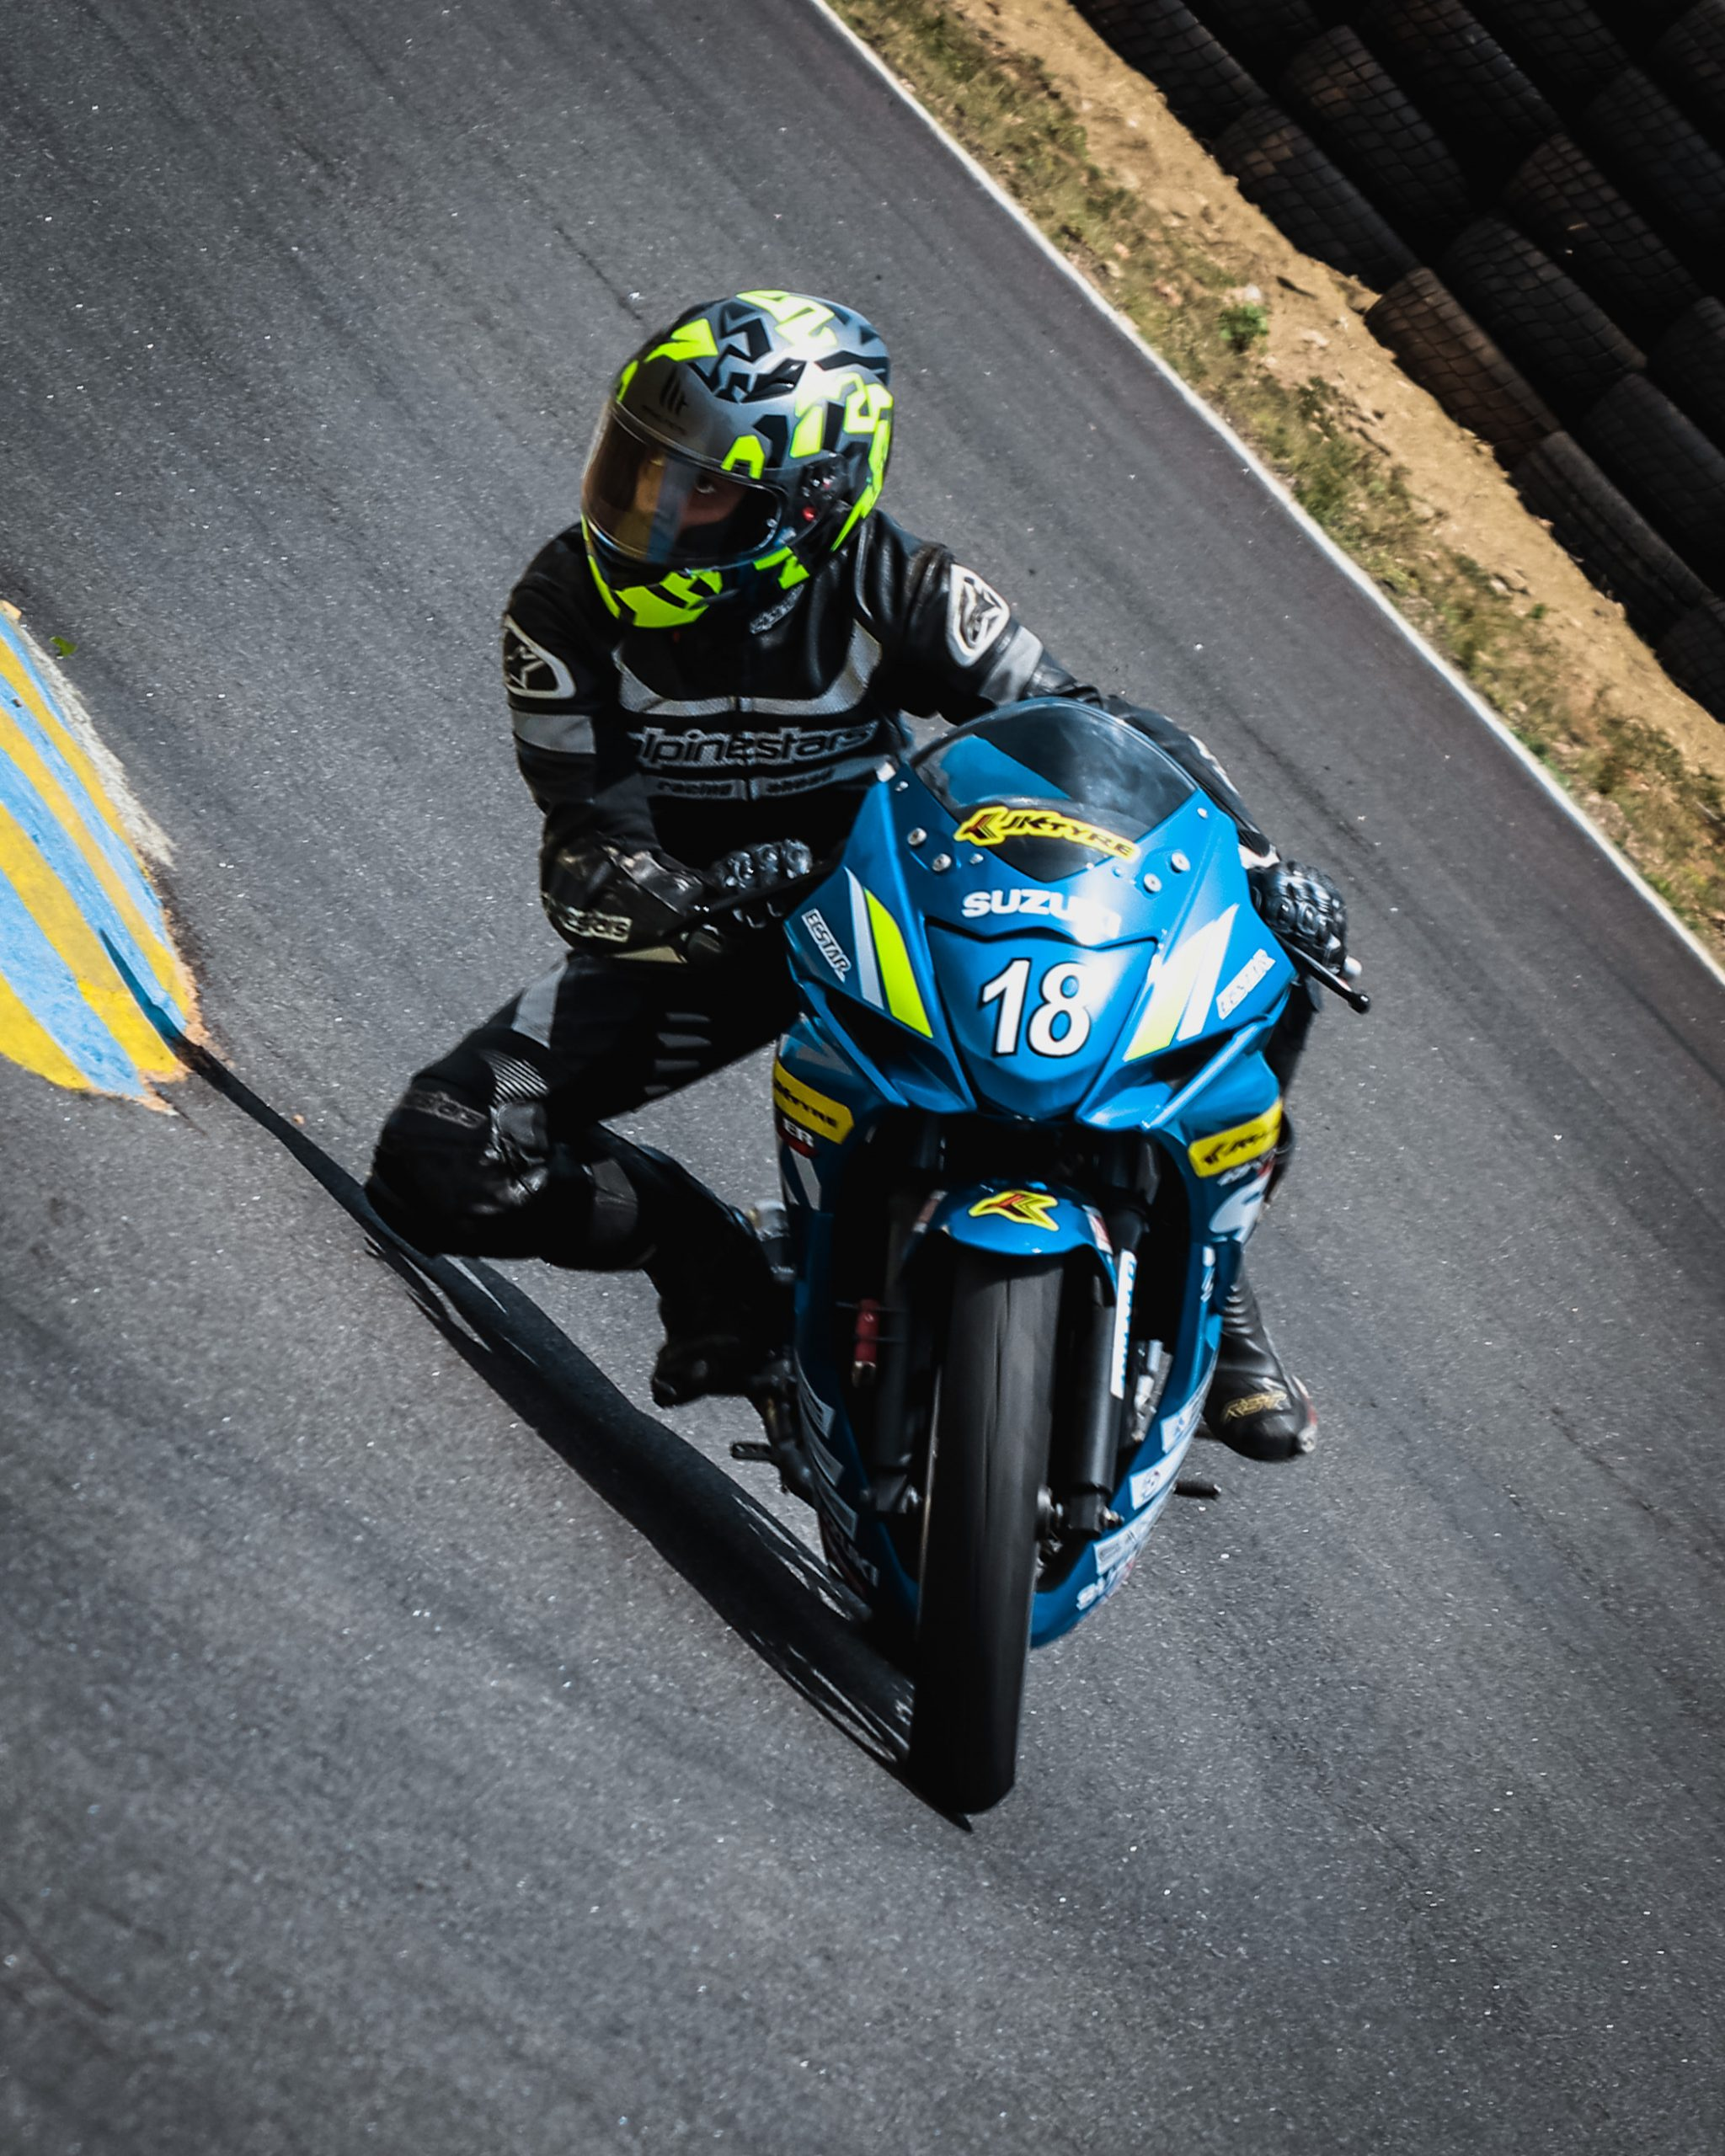 Racer on the Superbike Racing